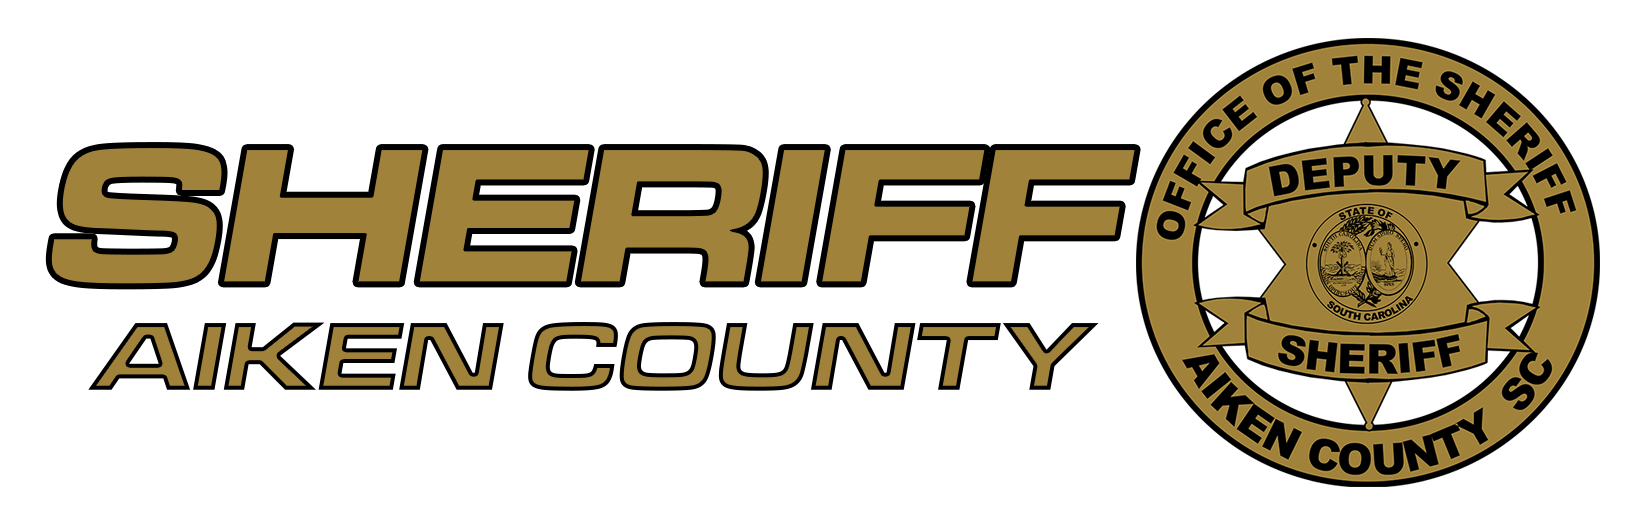 Aiken County Sheriff's Office